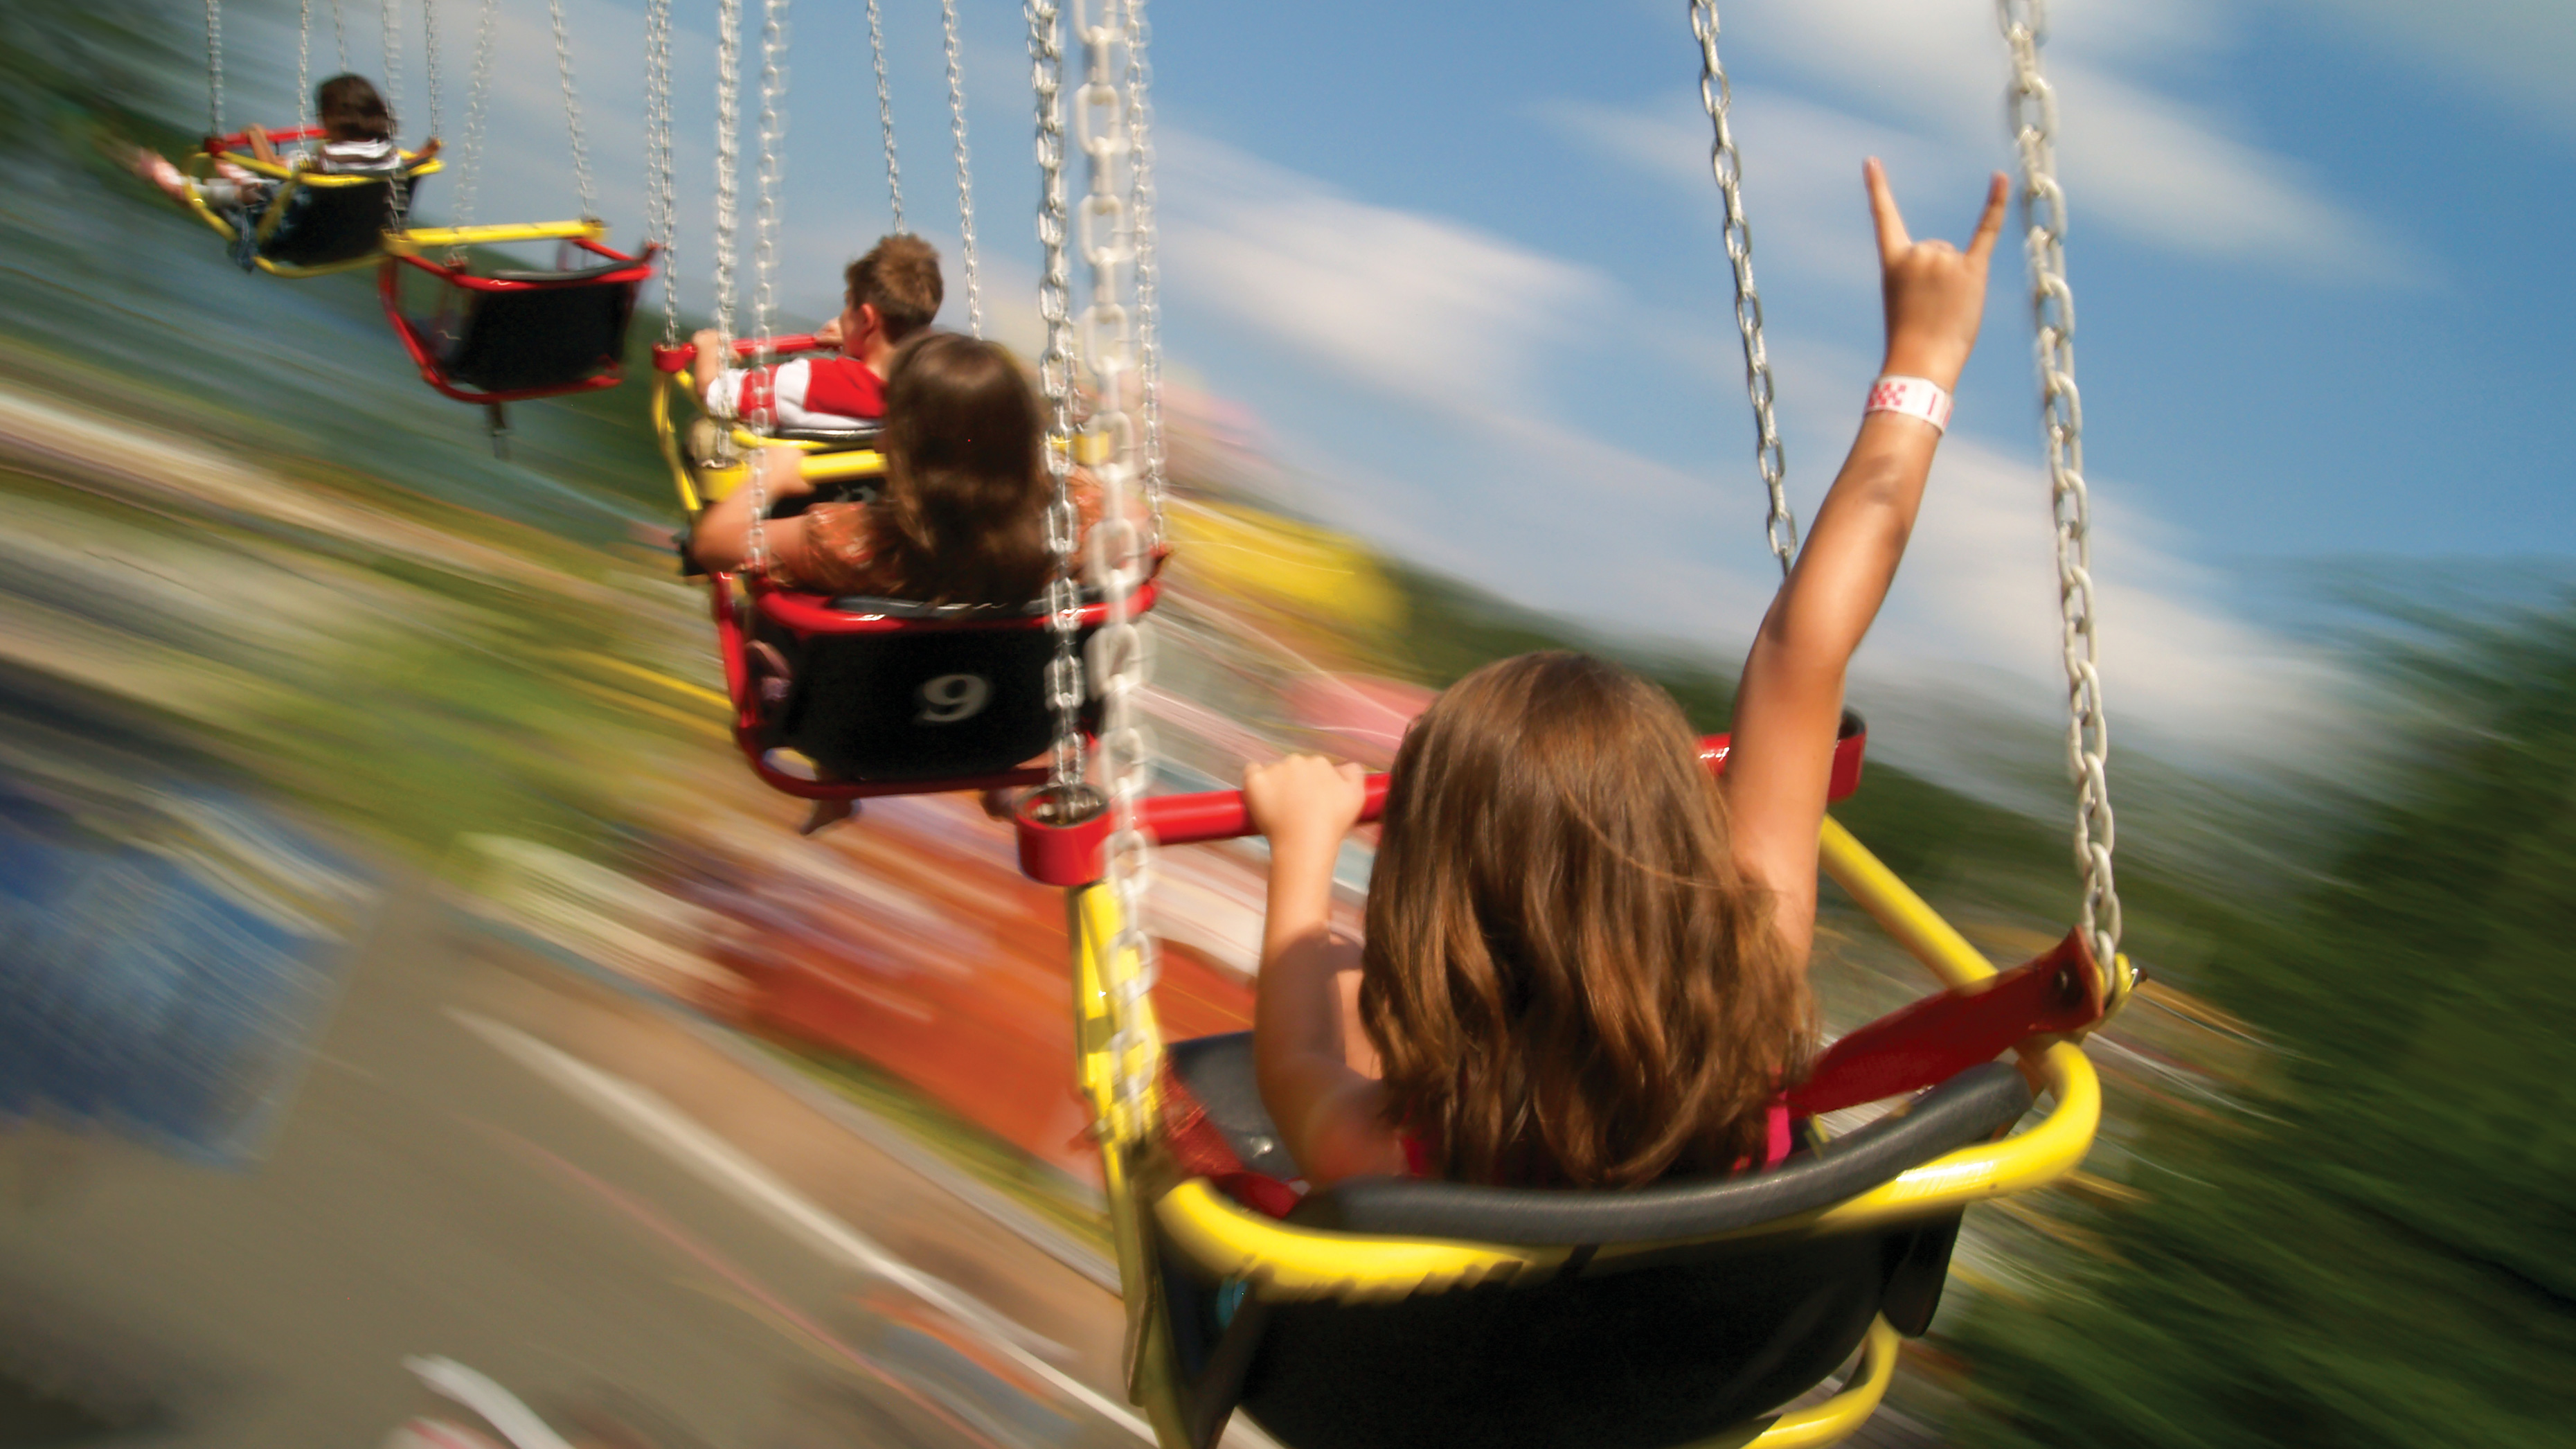 Kids enjoying the roller coaster at Quassy Amusement Park in Middlebury, CT